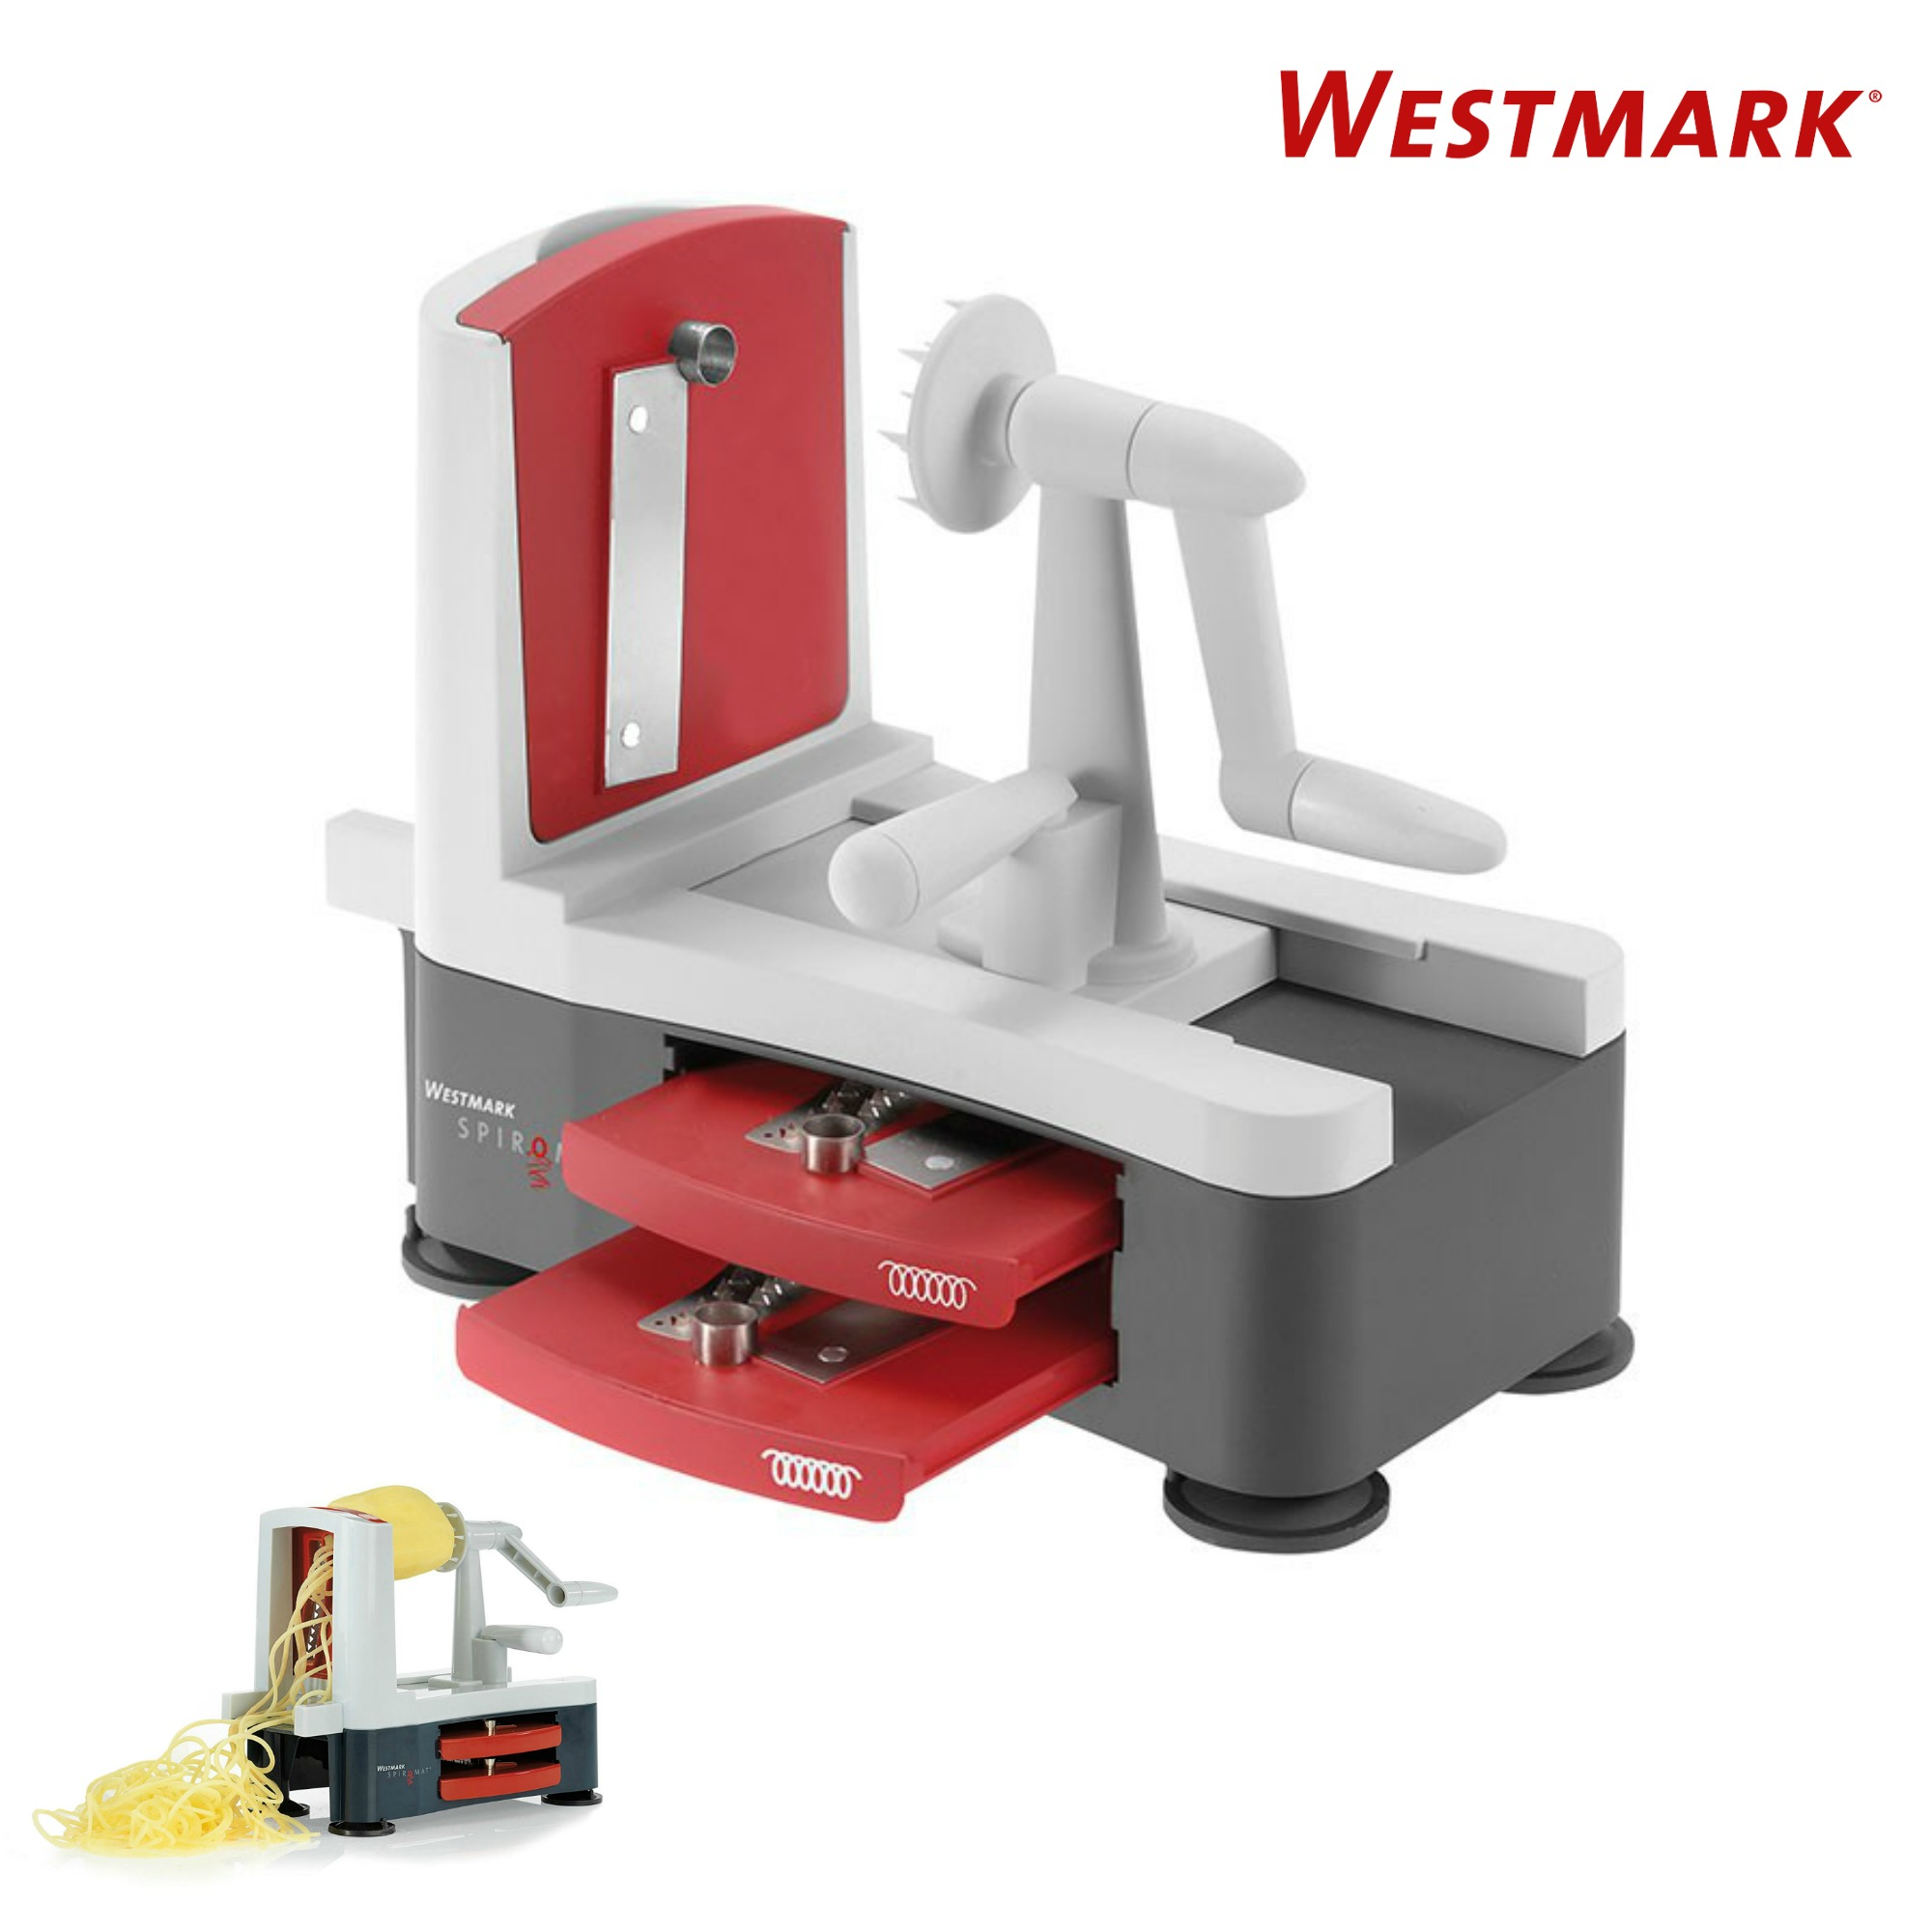 Westmark Elspe Westmark German High Quality Stainless Steel Tri Blade Vegetable Spiral Slicer Spiralizer